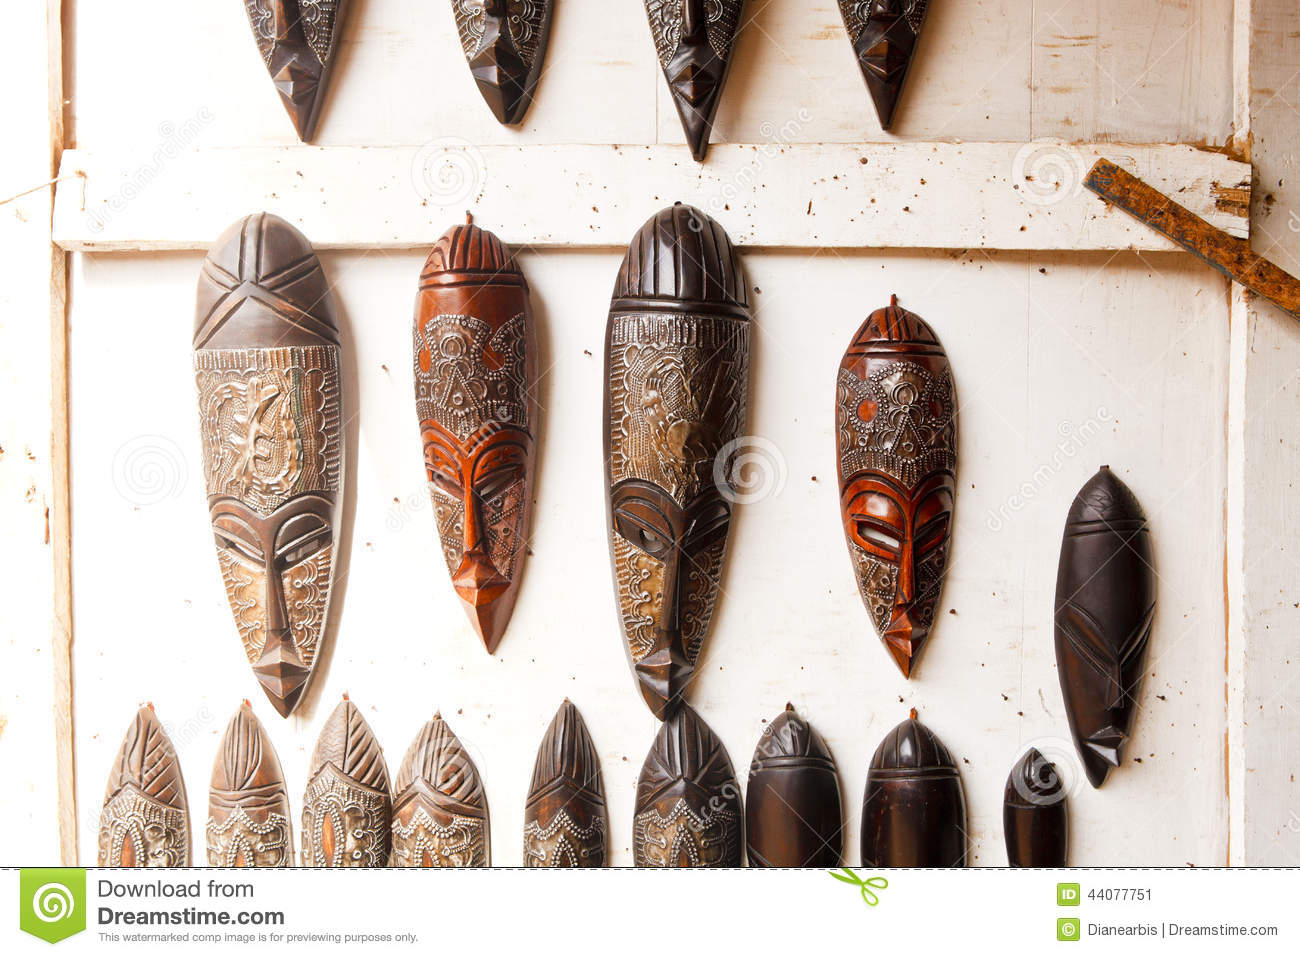 West African Art Display stock image  Image of detail - 44077751